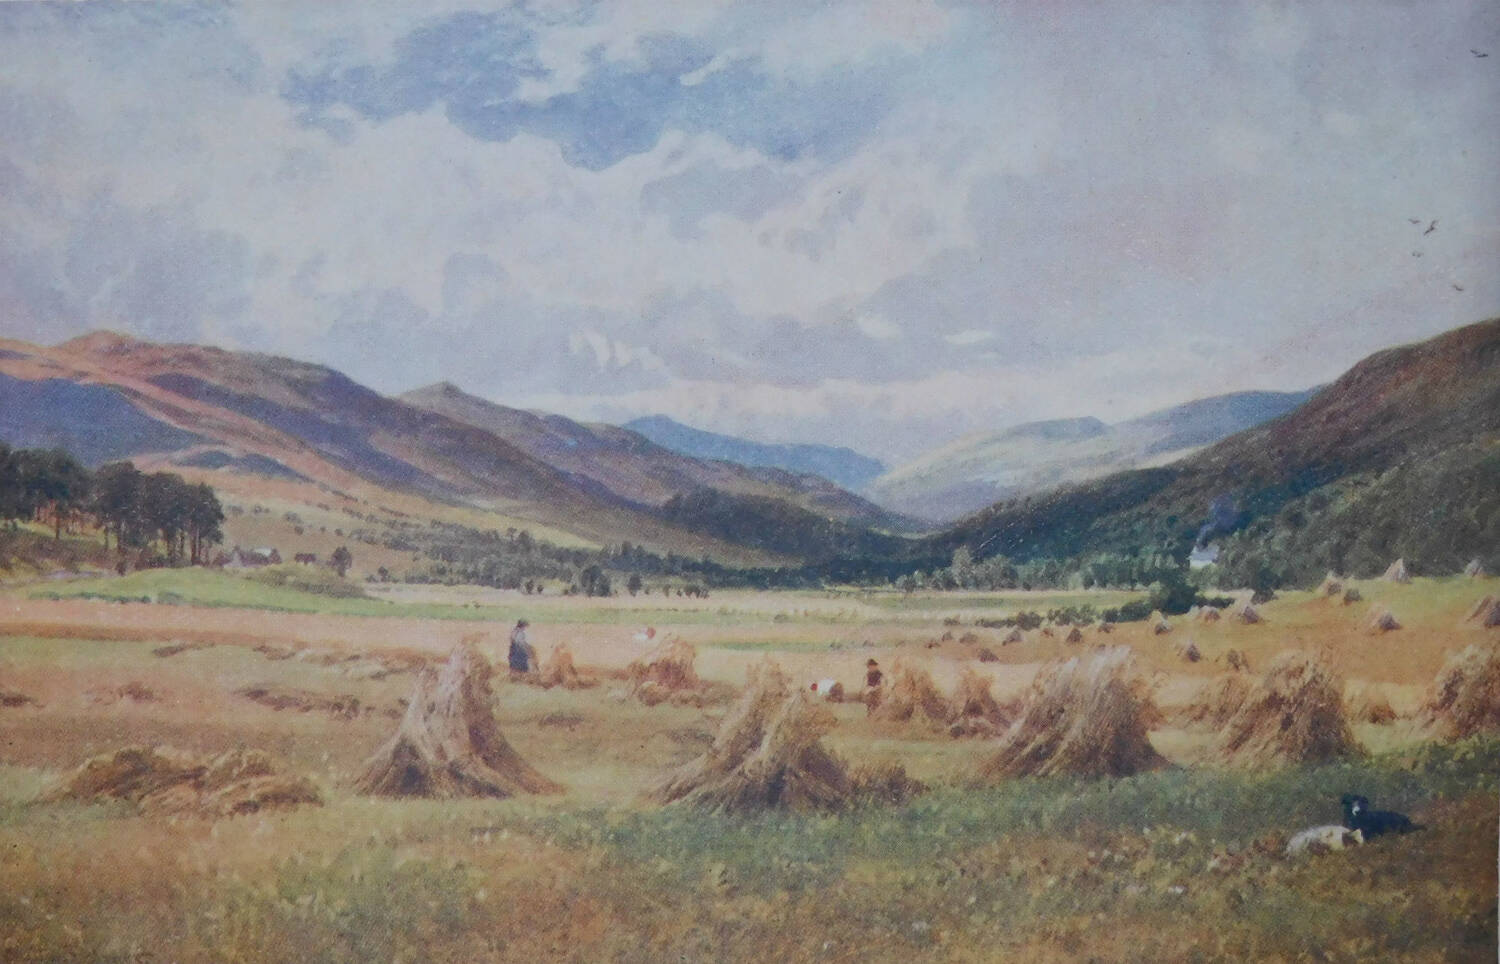 A painting of Glen Lochay with wide open fields and corn stacked into stooks for drying. People are working in the fields and two sheepdogs lie in the foreground. Smoke rises from the chimney of a house in the distance.